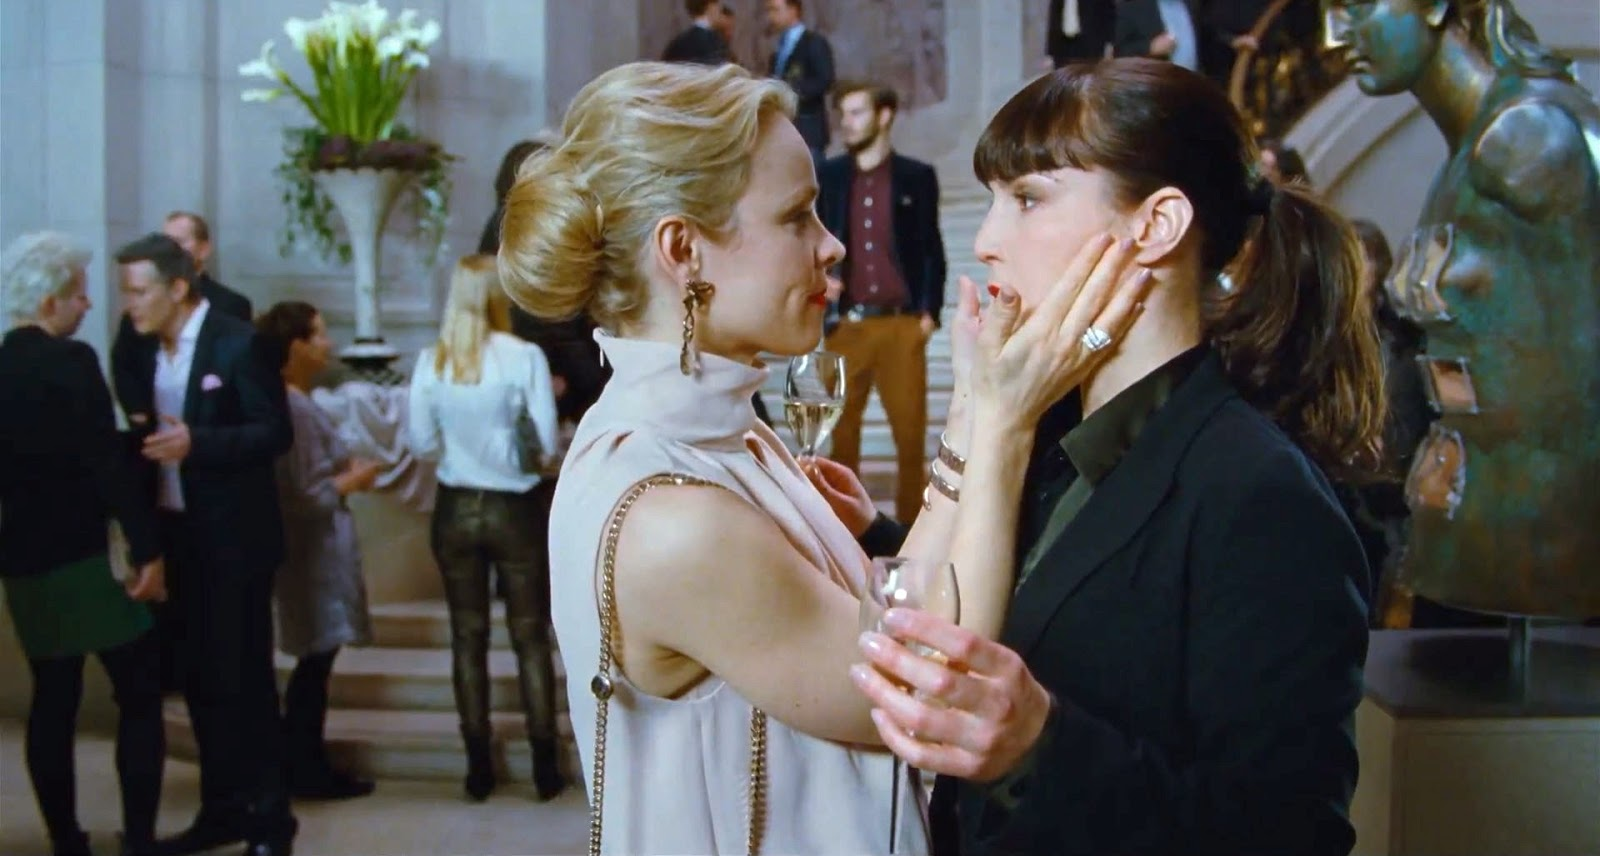 Rachel mcadams and noomi rapace passion 8